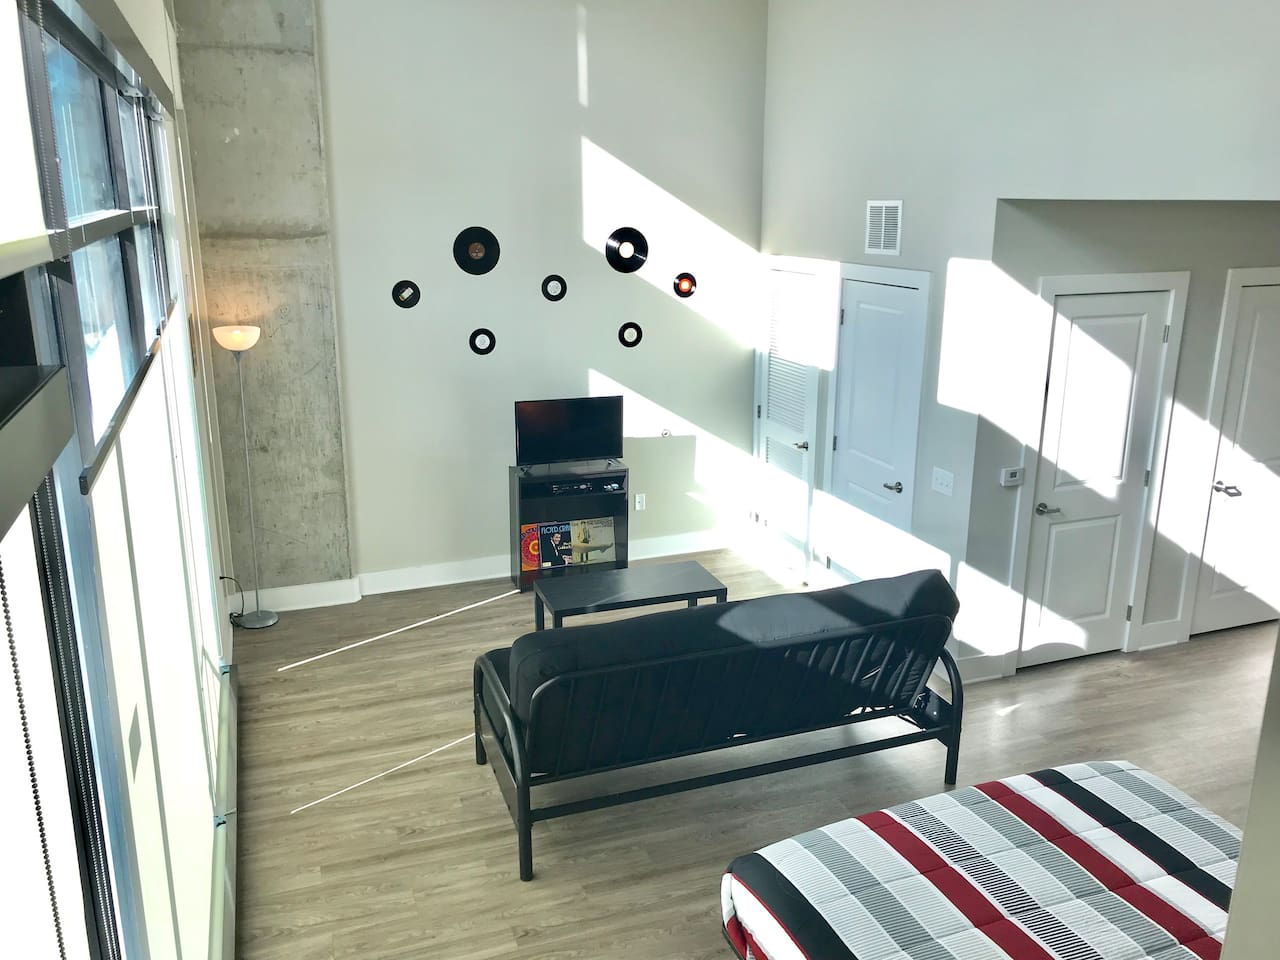 1st floor of loft!! Sleeper sofa and a Queen bed!! Very comfy!  Permit#2018010109